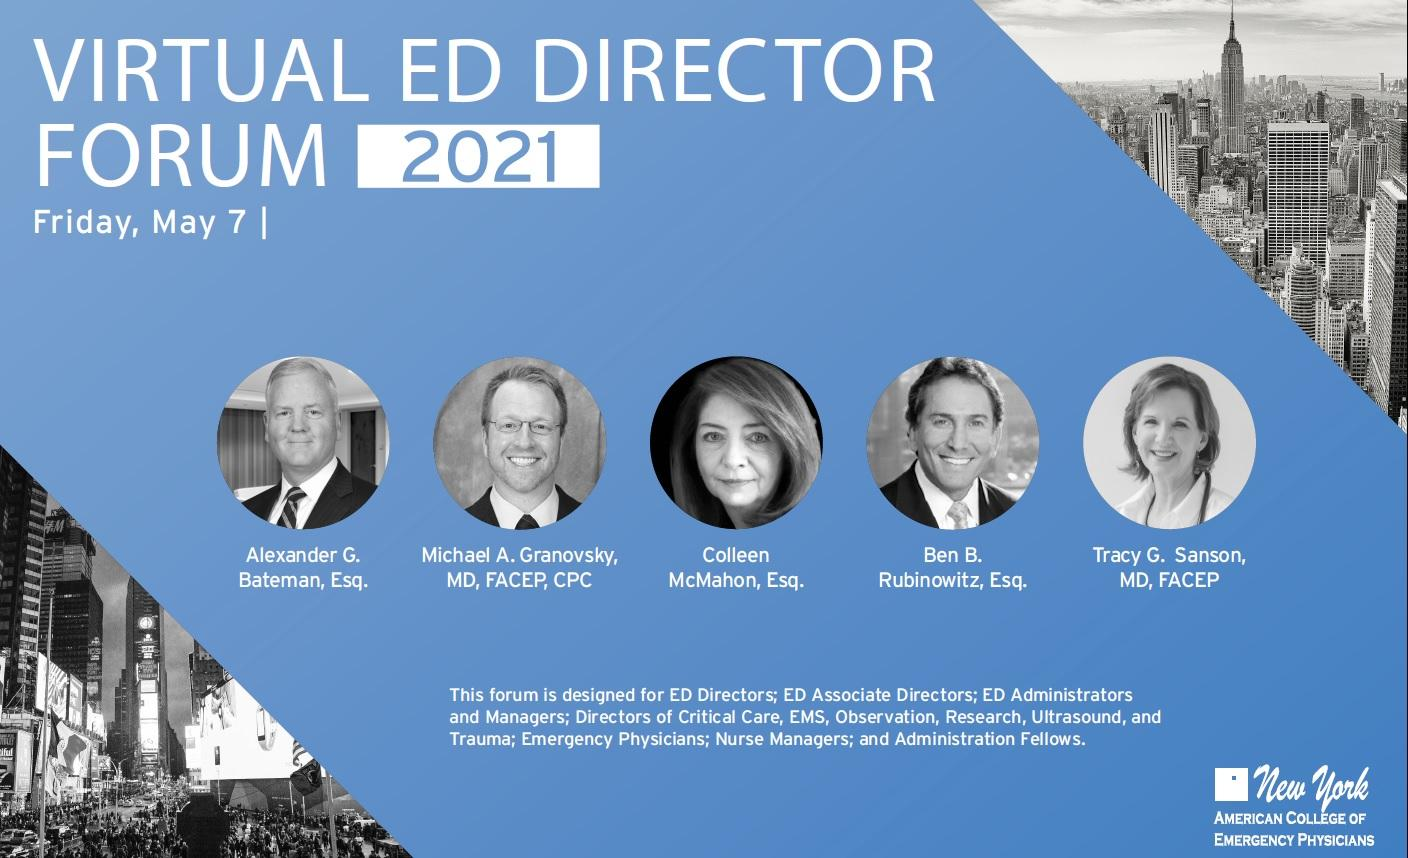 NYC Medical Malpractice Attorney Ben Rubinowitz will participate to the virtual ED Director Forum